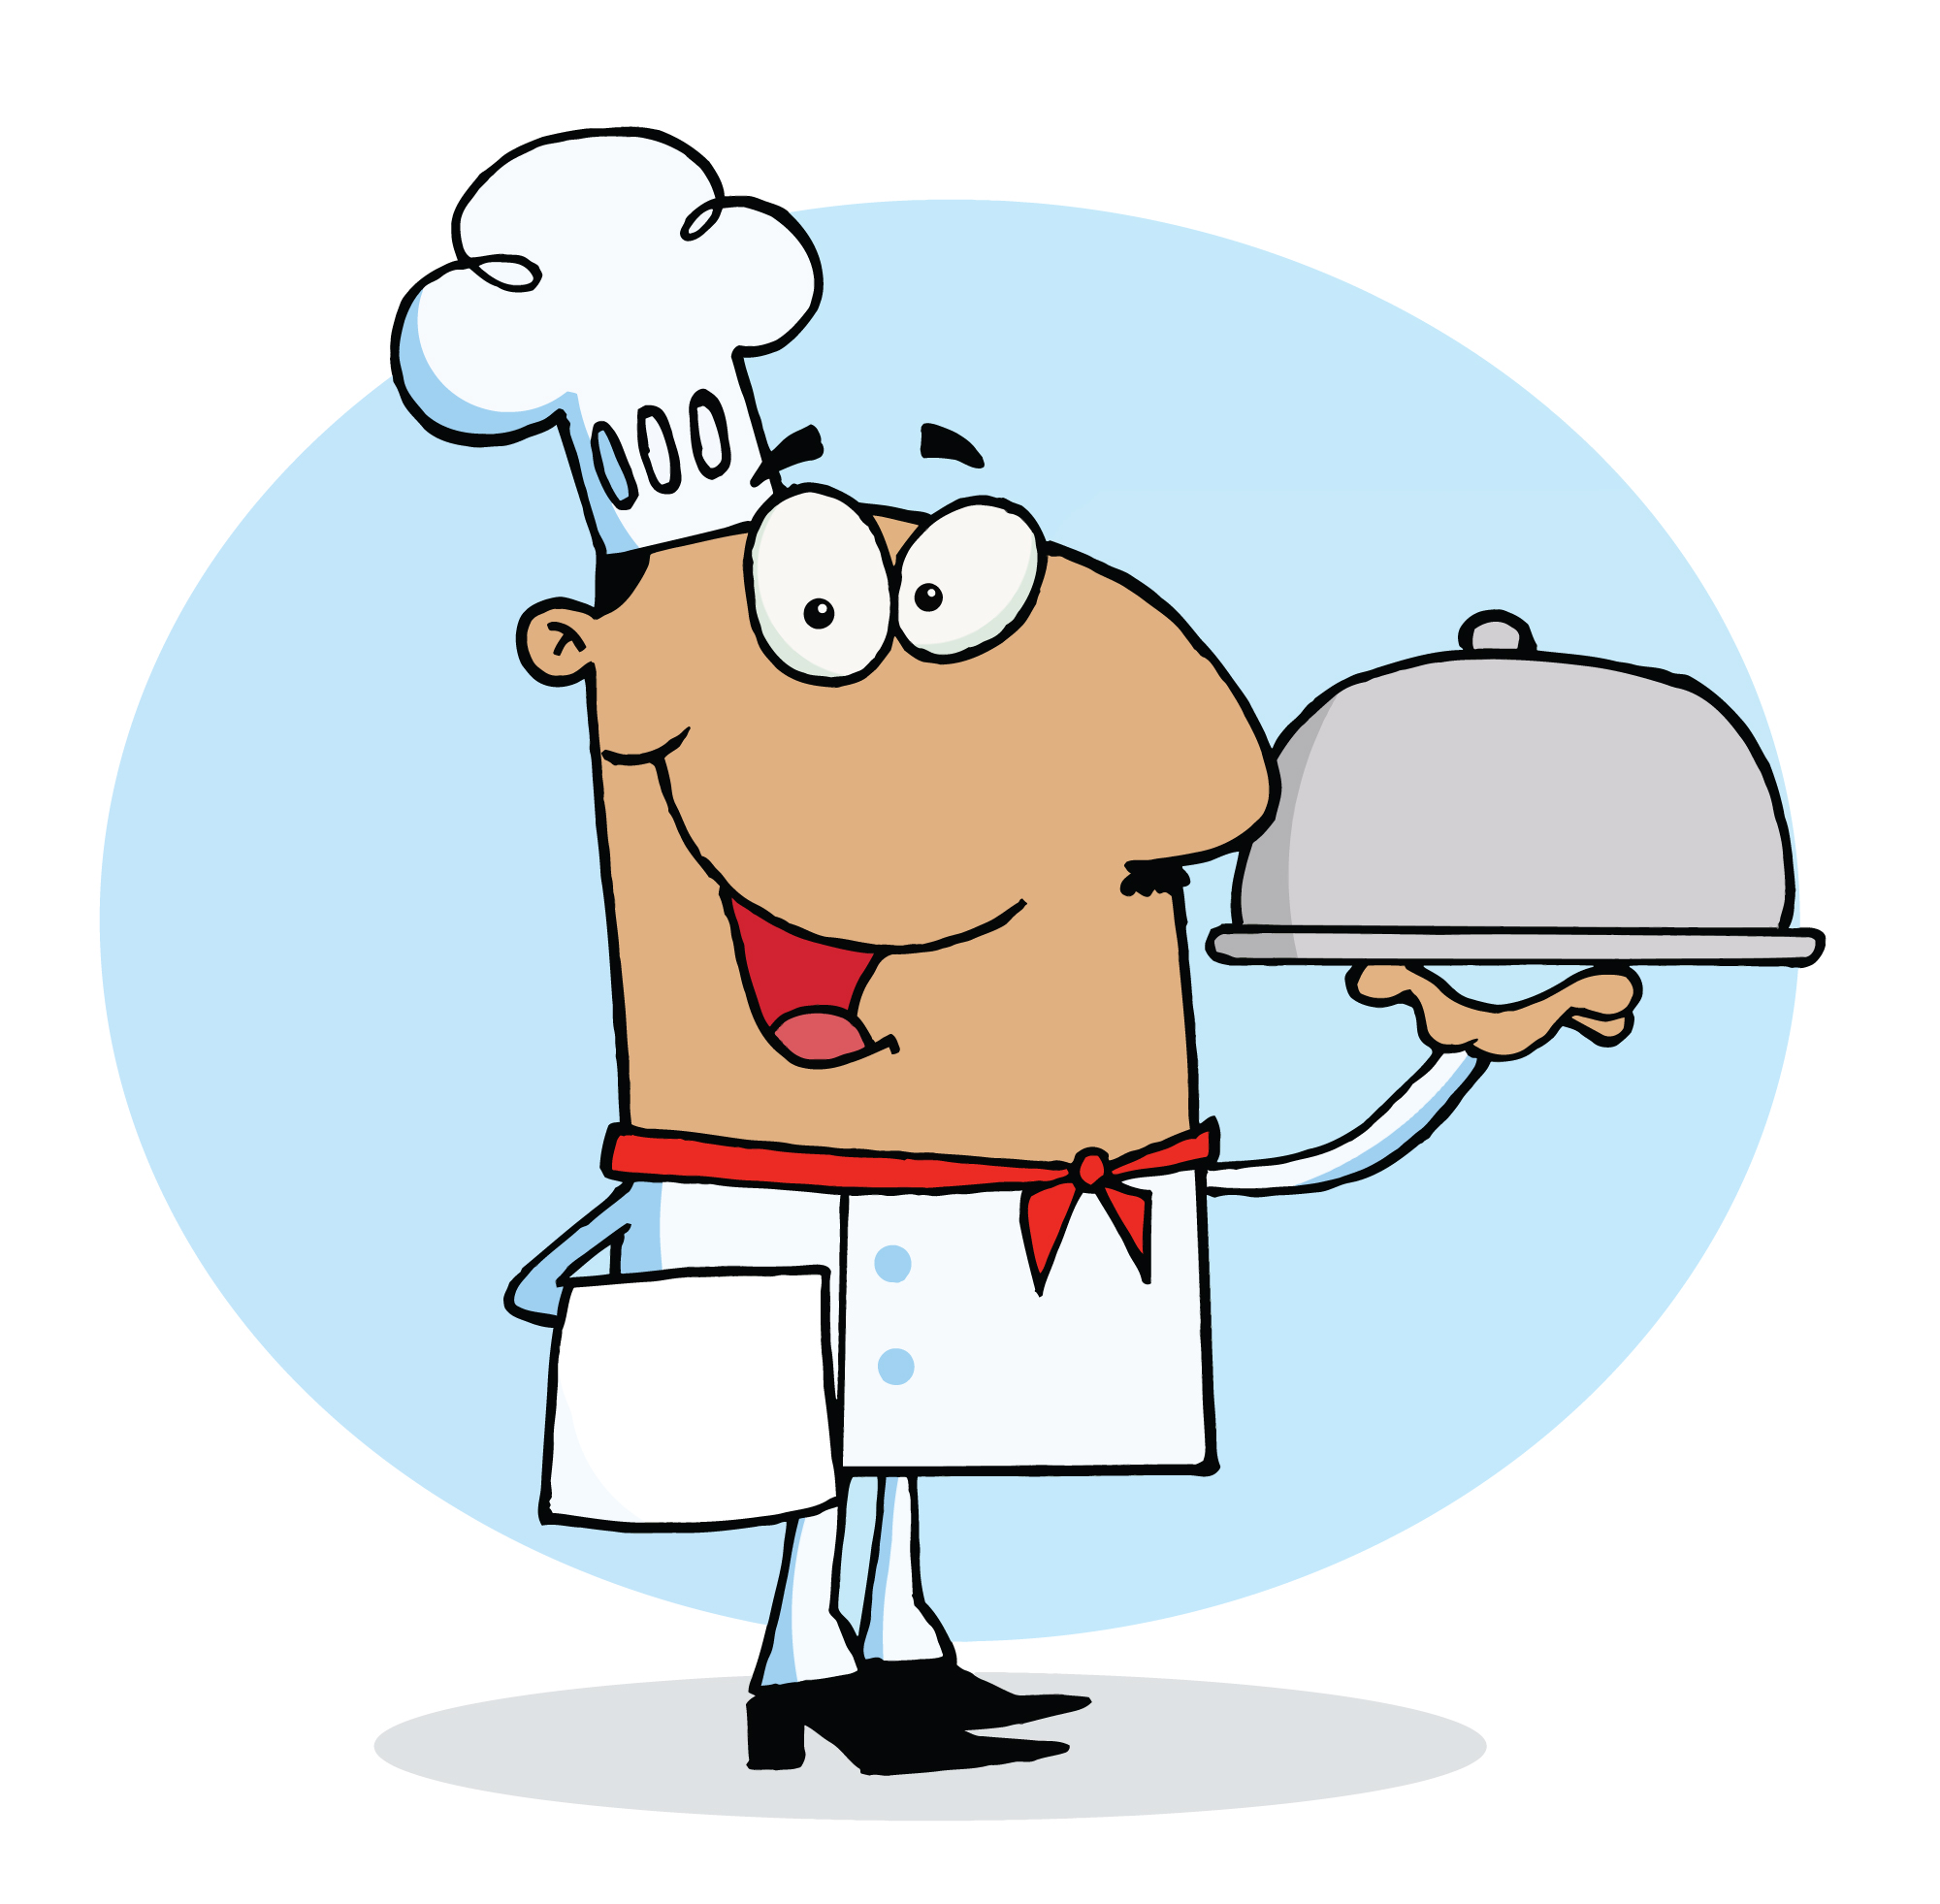 Cooking panda free images. Cook clipart